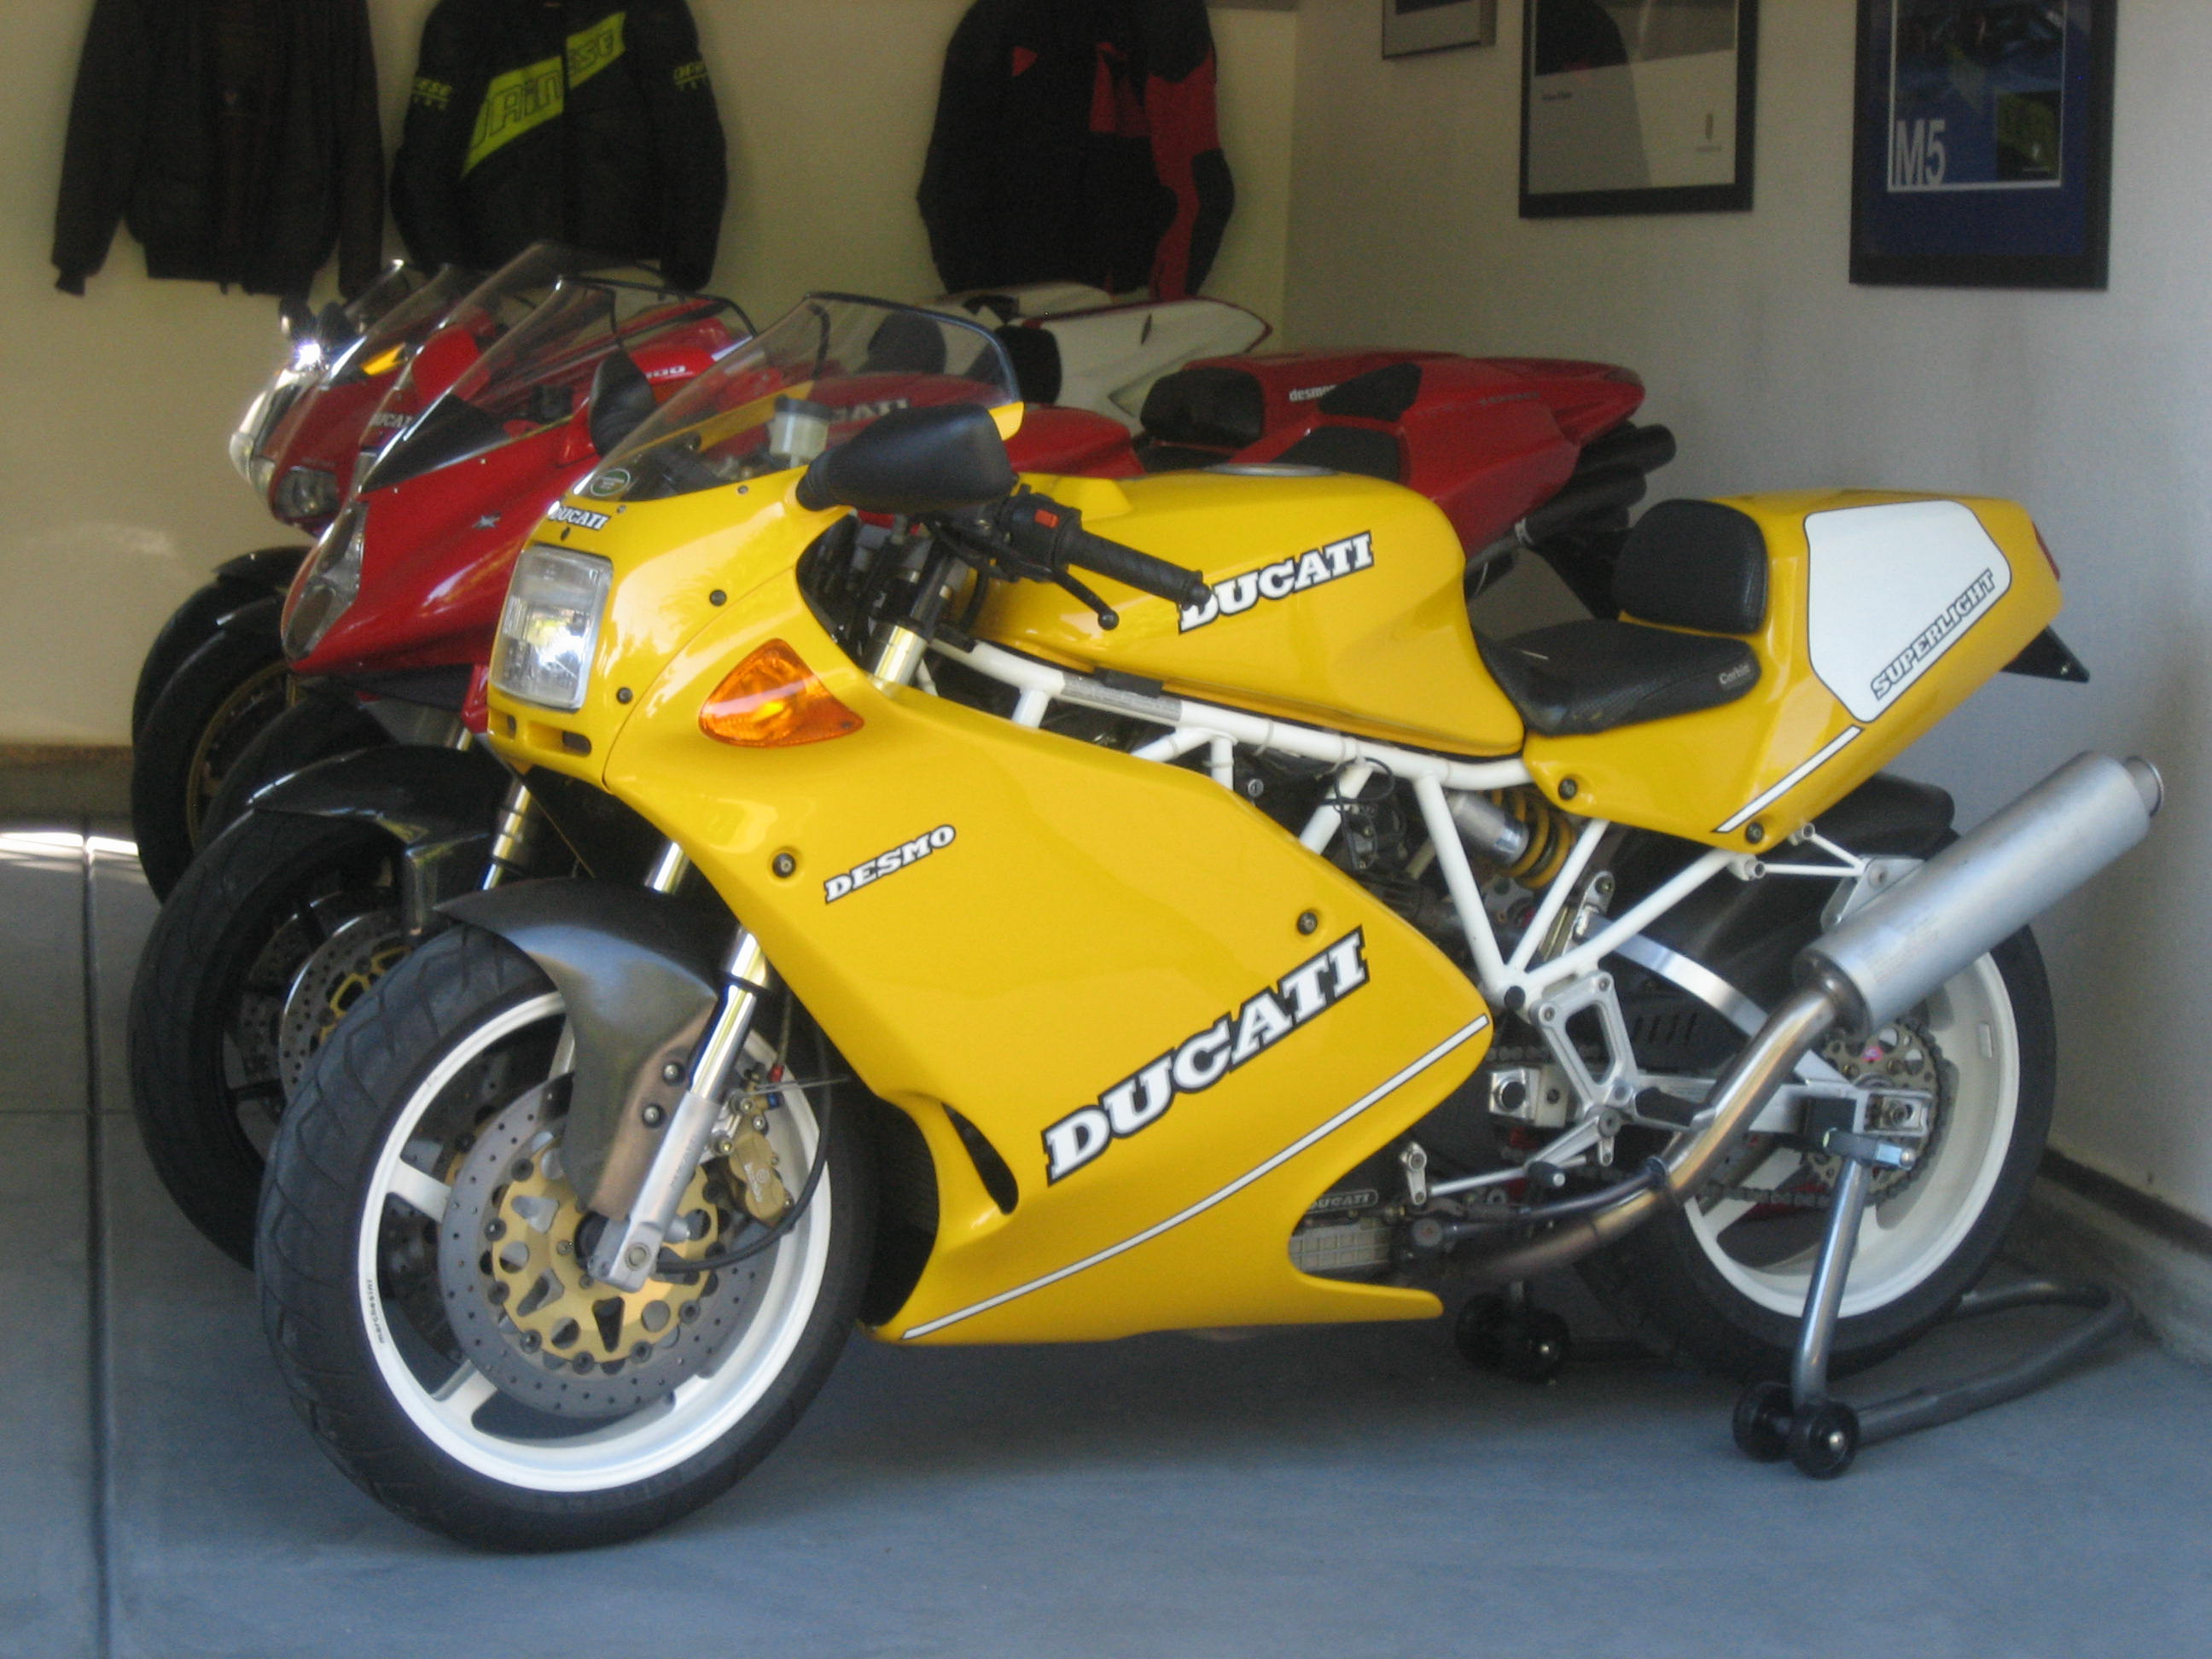 Ducati 900 Superlight wallpapers #10675